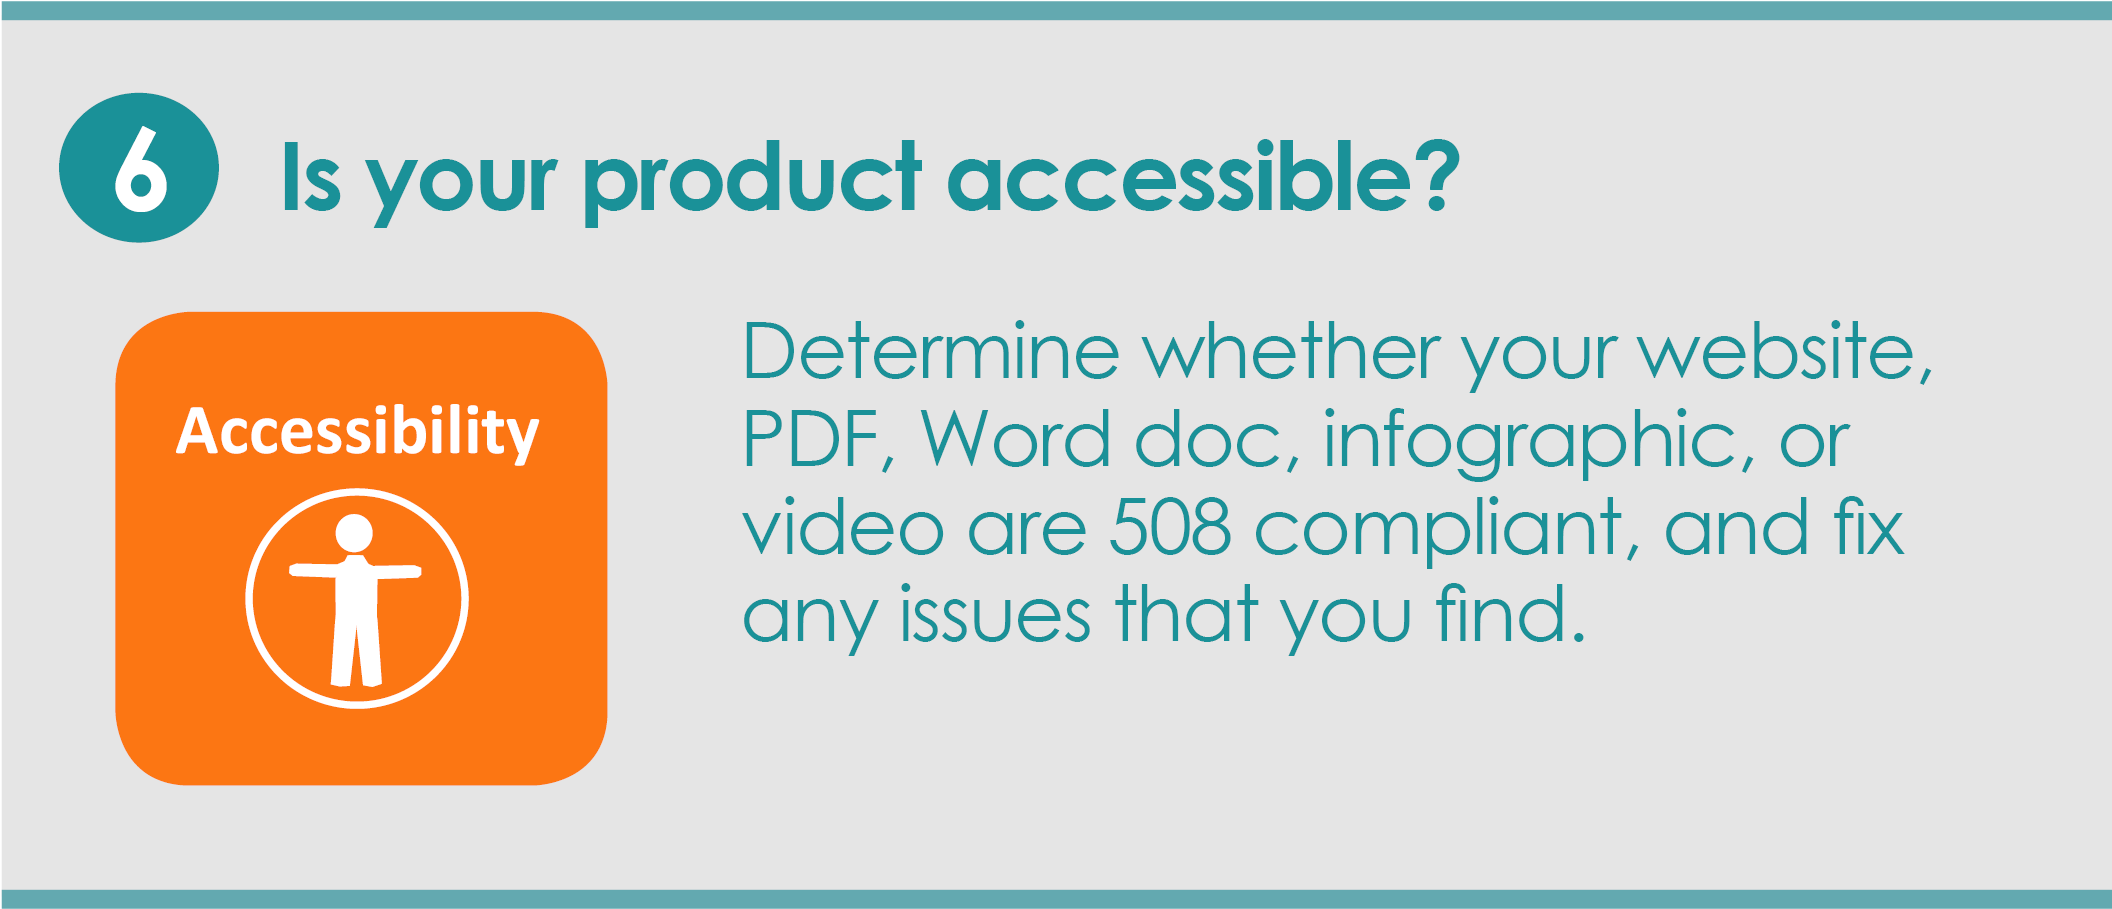 Step 6: Is your product accessible? Determine whether your website, PDF, Word doc, infographic, or video are 508 compliant, and fix any issues that you find.